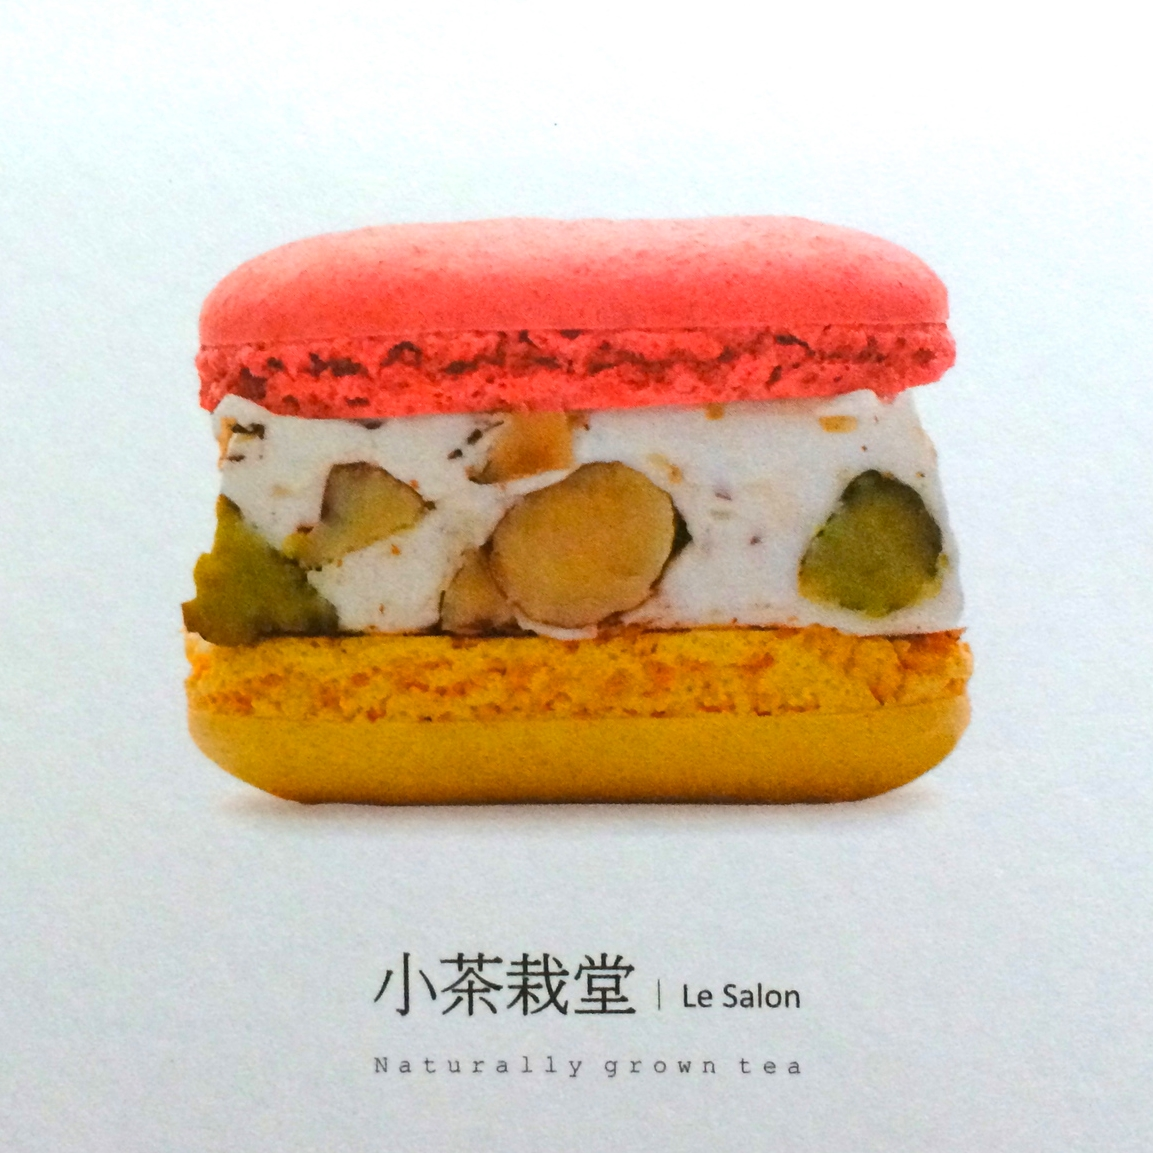 nougat-macarons , from  le salon  in taiwan. who ever heard of such a thing? hhh ate the ones claire brought before i could take a photo.